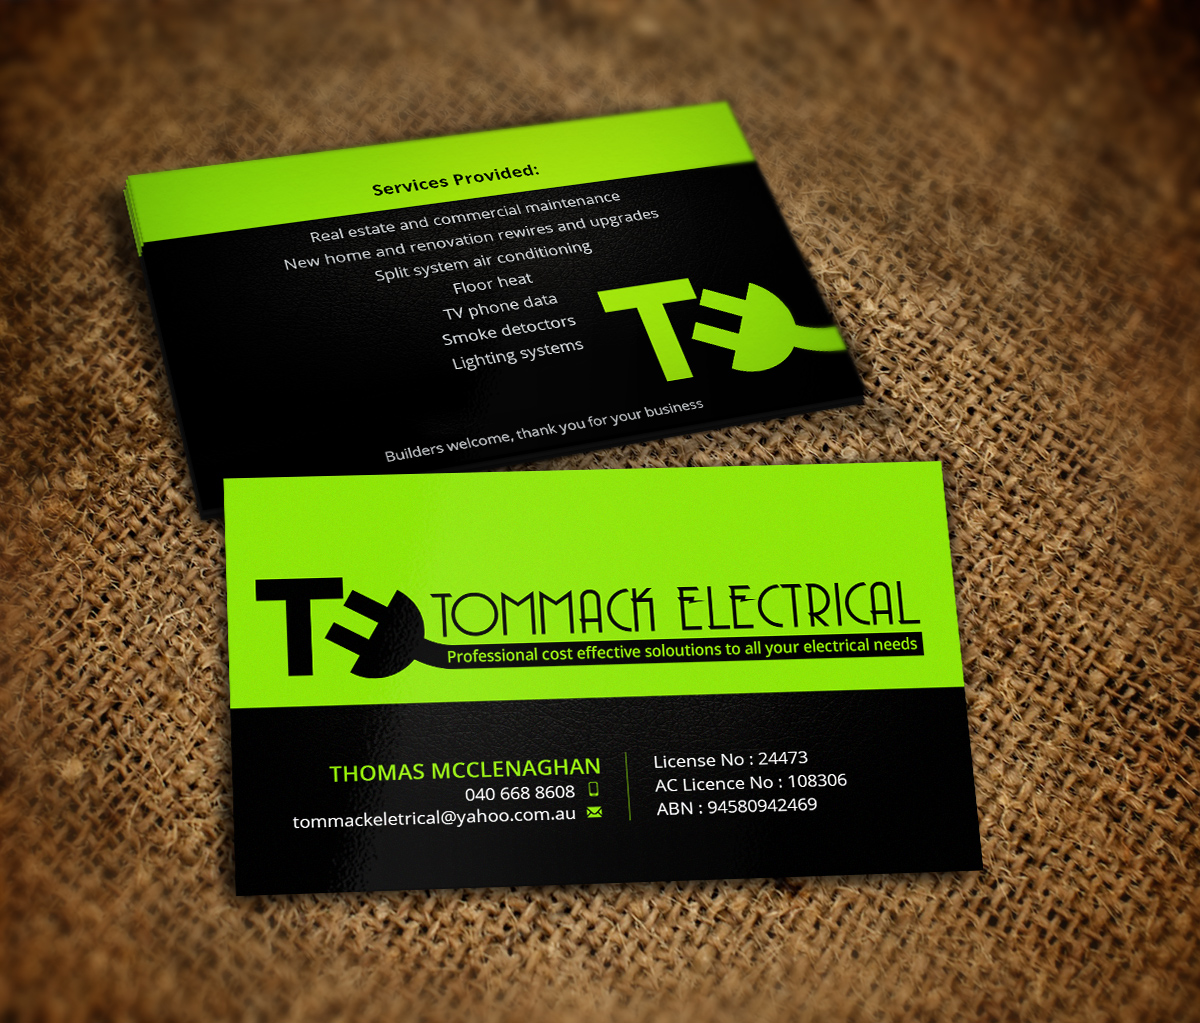 Business Card Design By Nelsur For Tommack Electrical 5159811